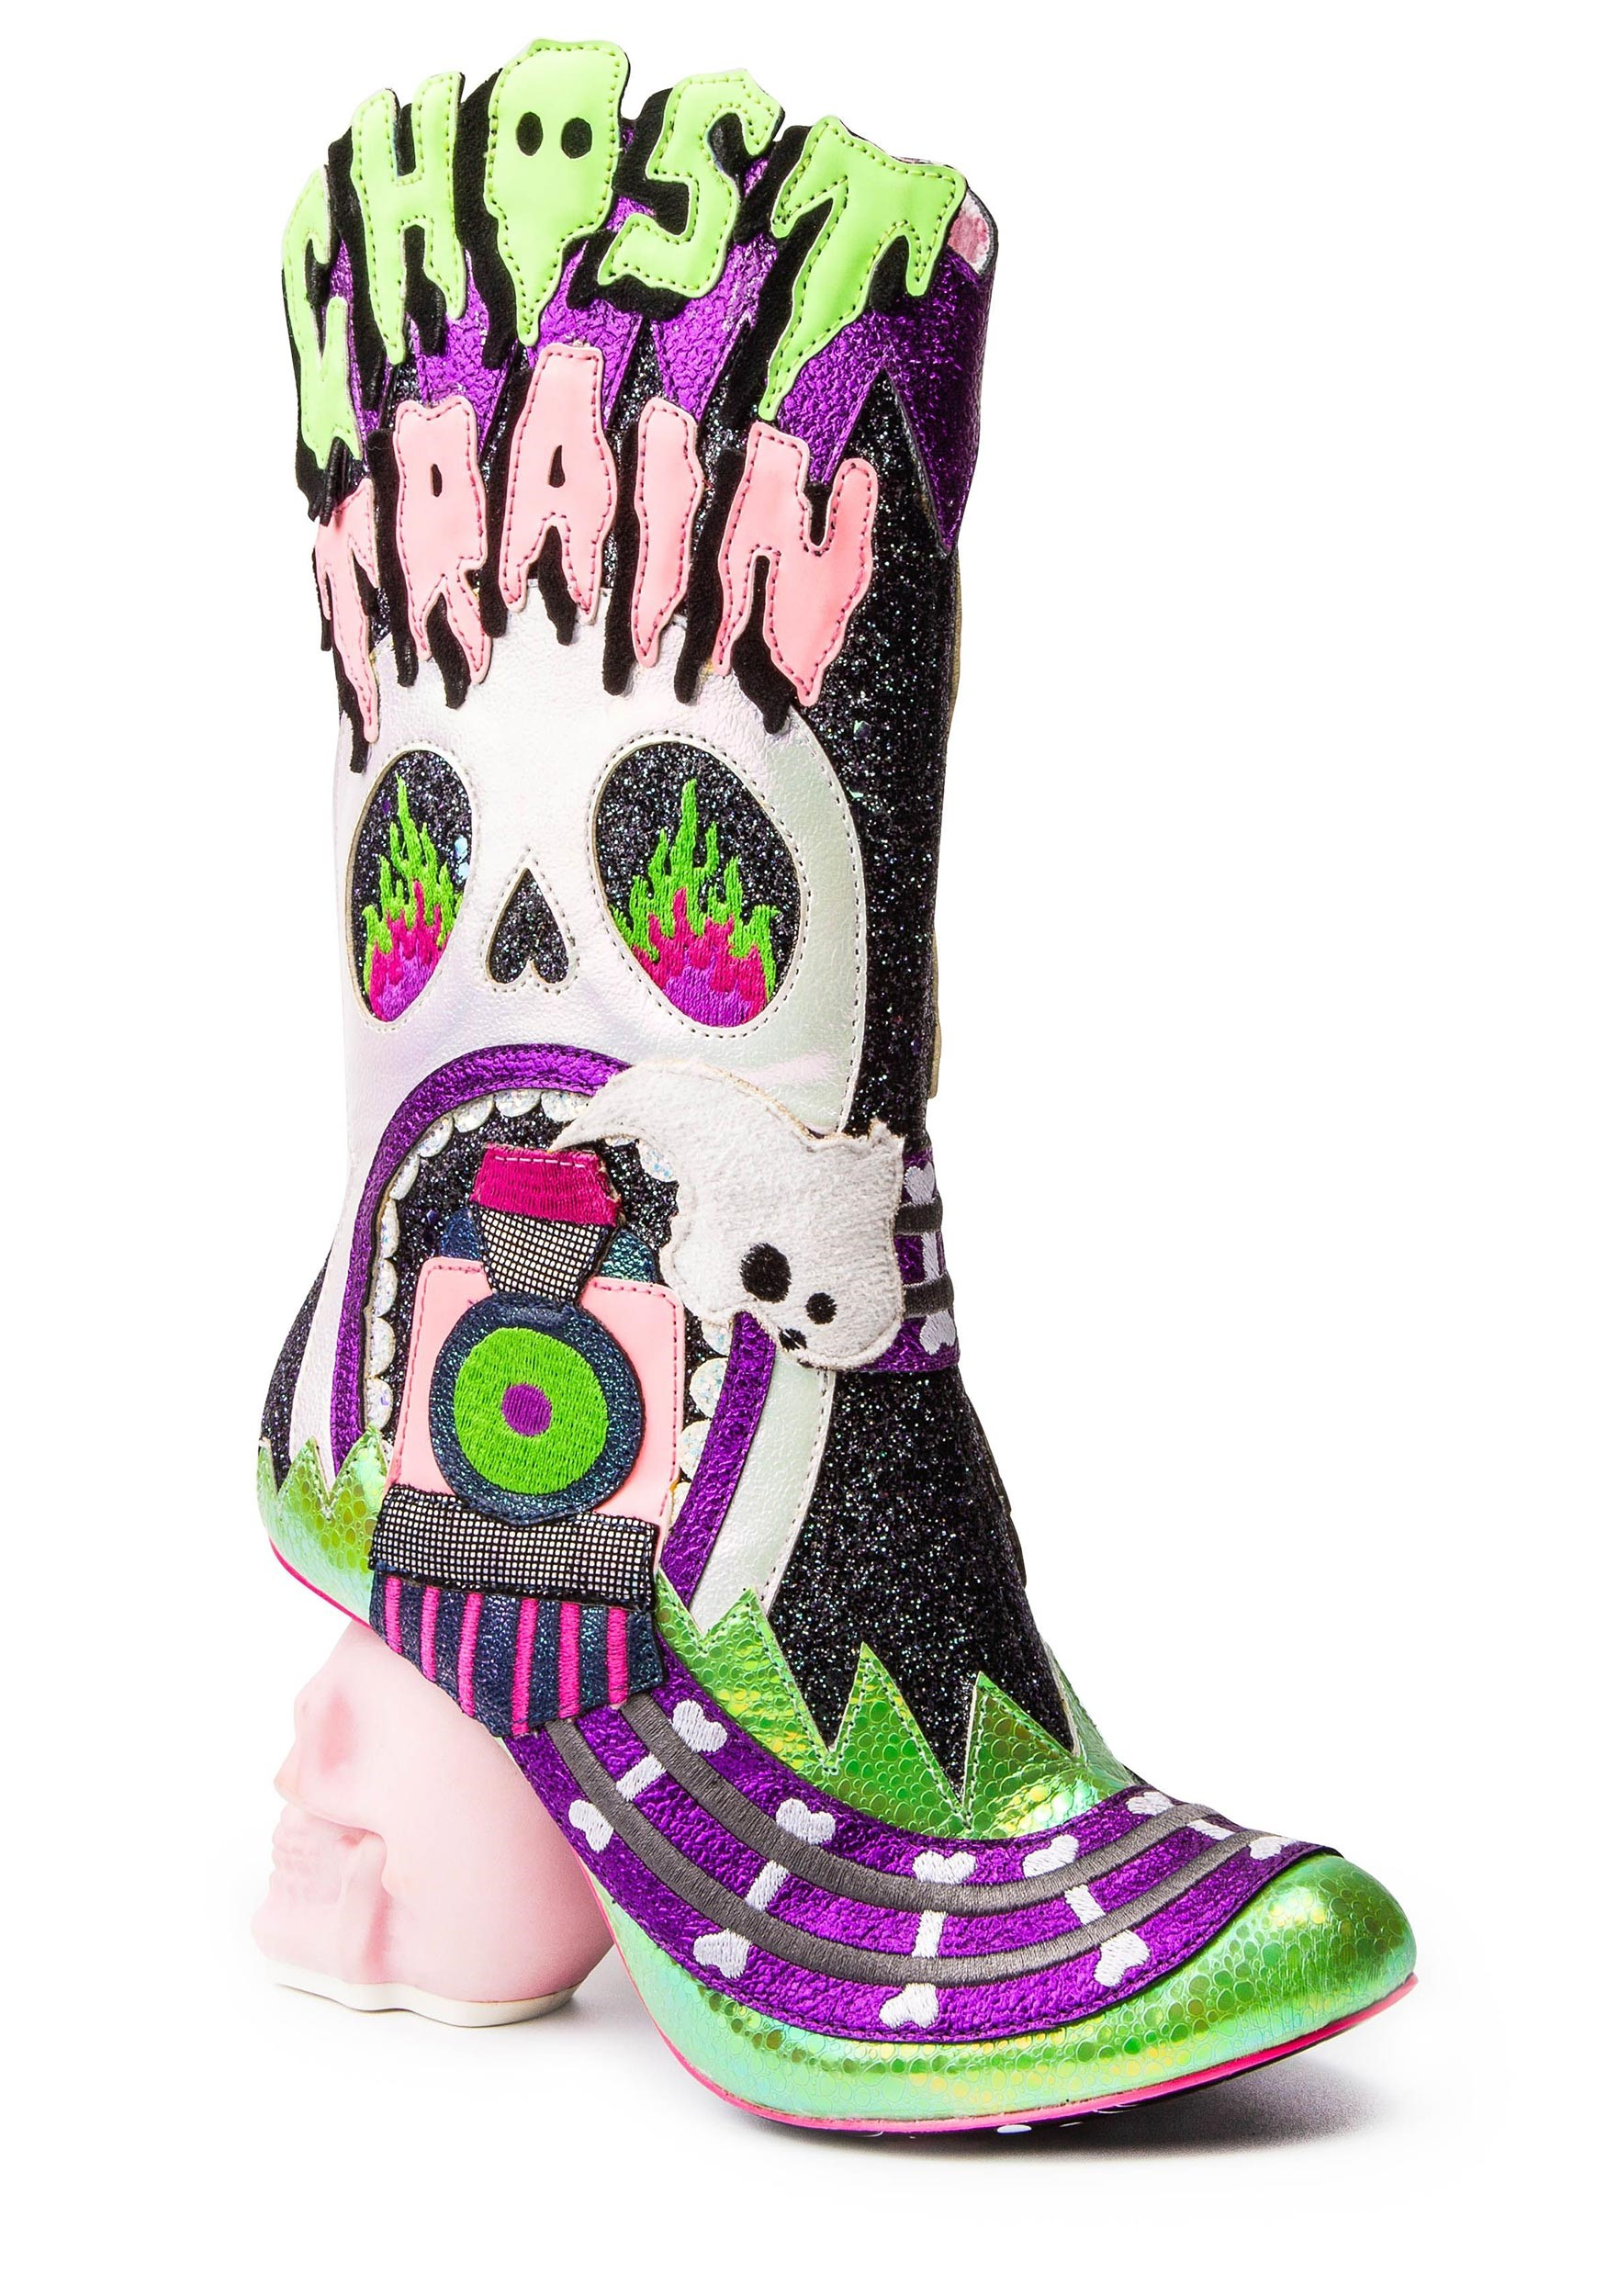 These Halloween boots and high-heel shoes are too wacky to be spooky 15